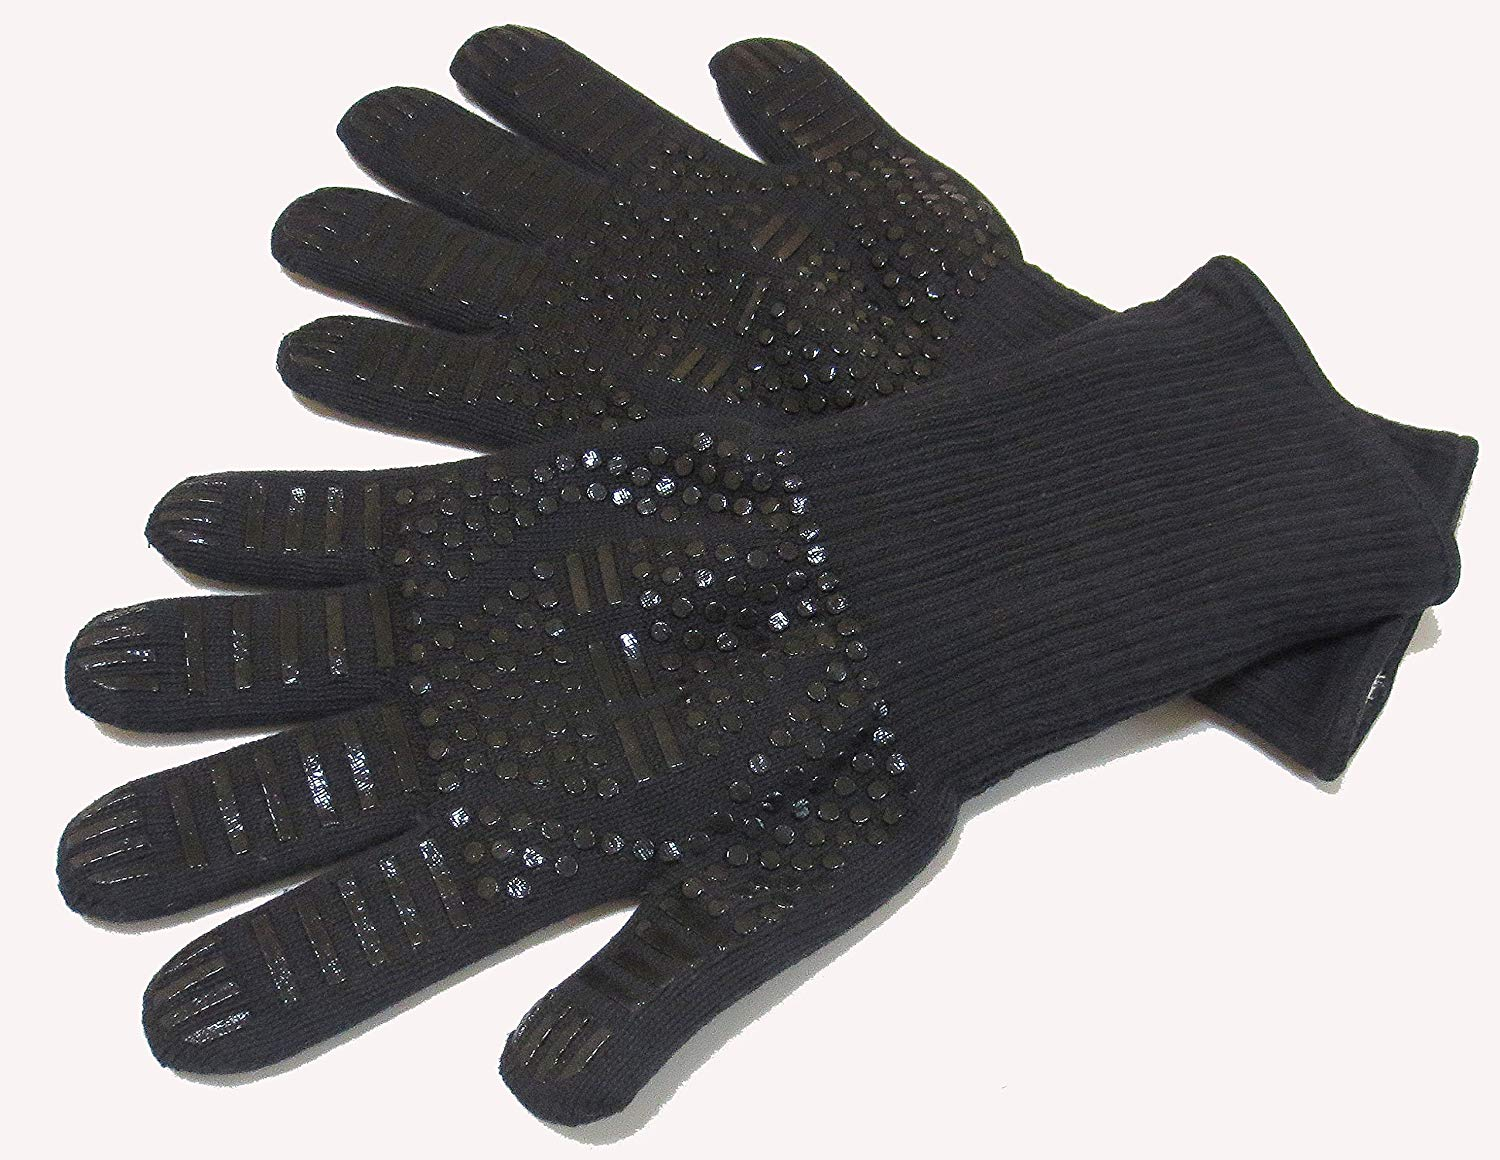 EFFi BBQ Gloves 932°F, Flexible Safe, Cotton Inside Oven Mitts for Cooking, Grilling, Baking, Extreme Heat Resistant, Best for Prevent Burns, Long Sleeve (14 Inch, XXL, Black) 1 Pair.